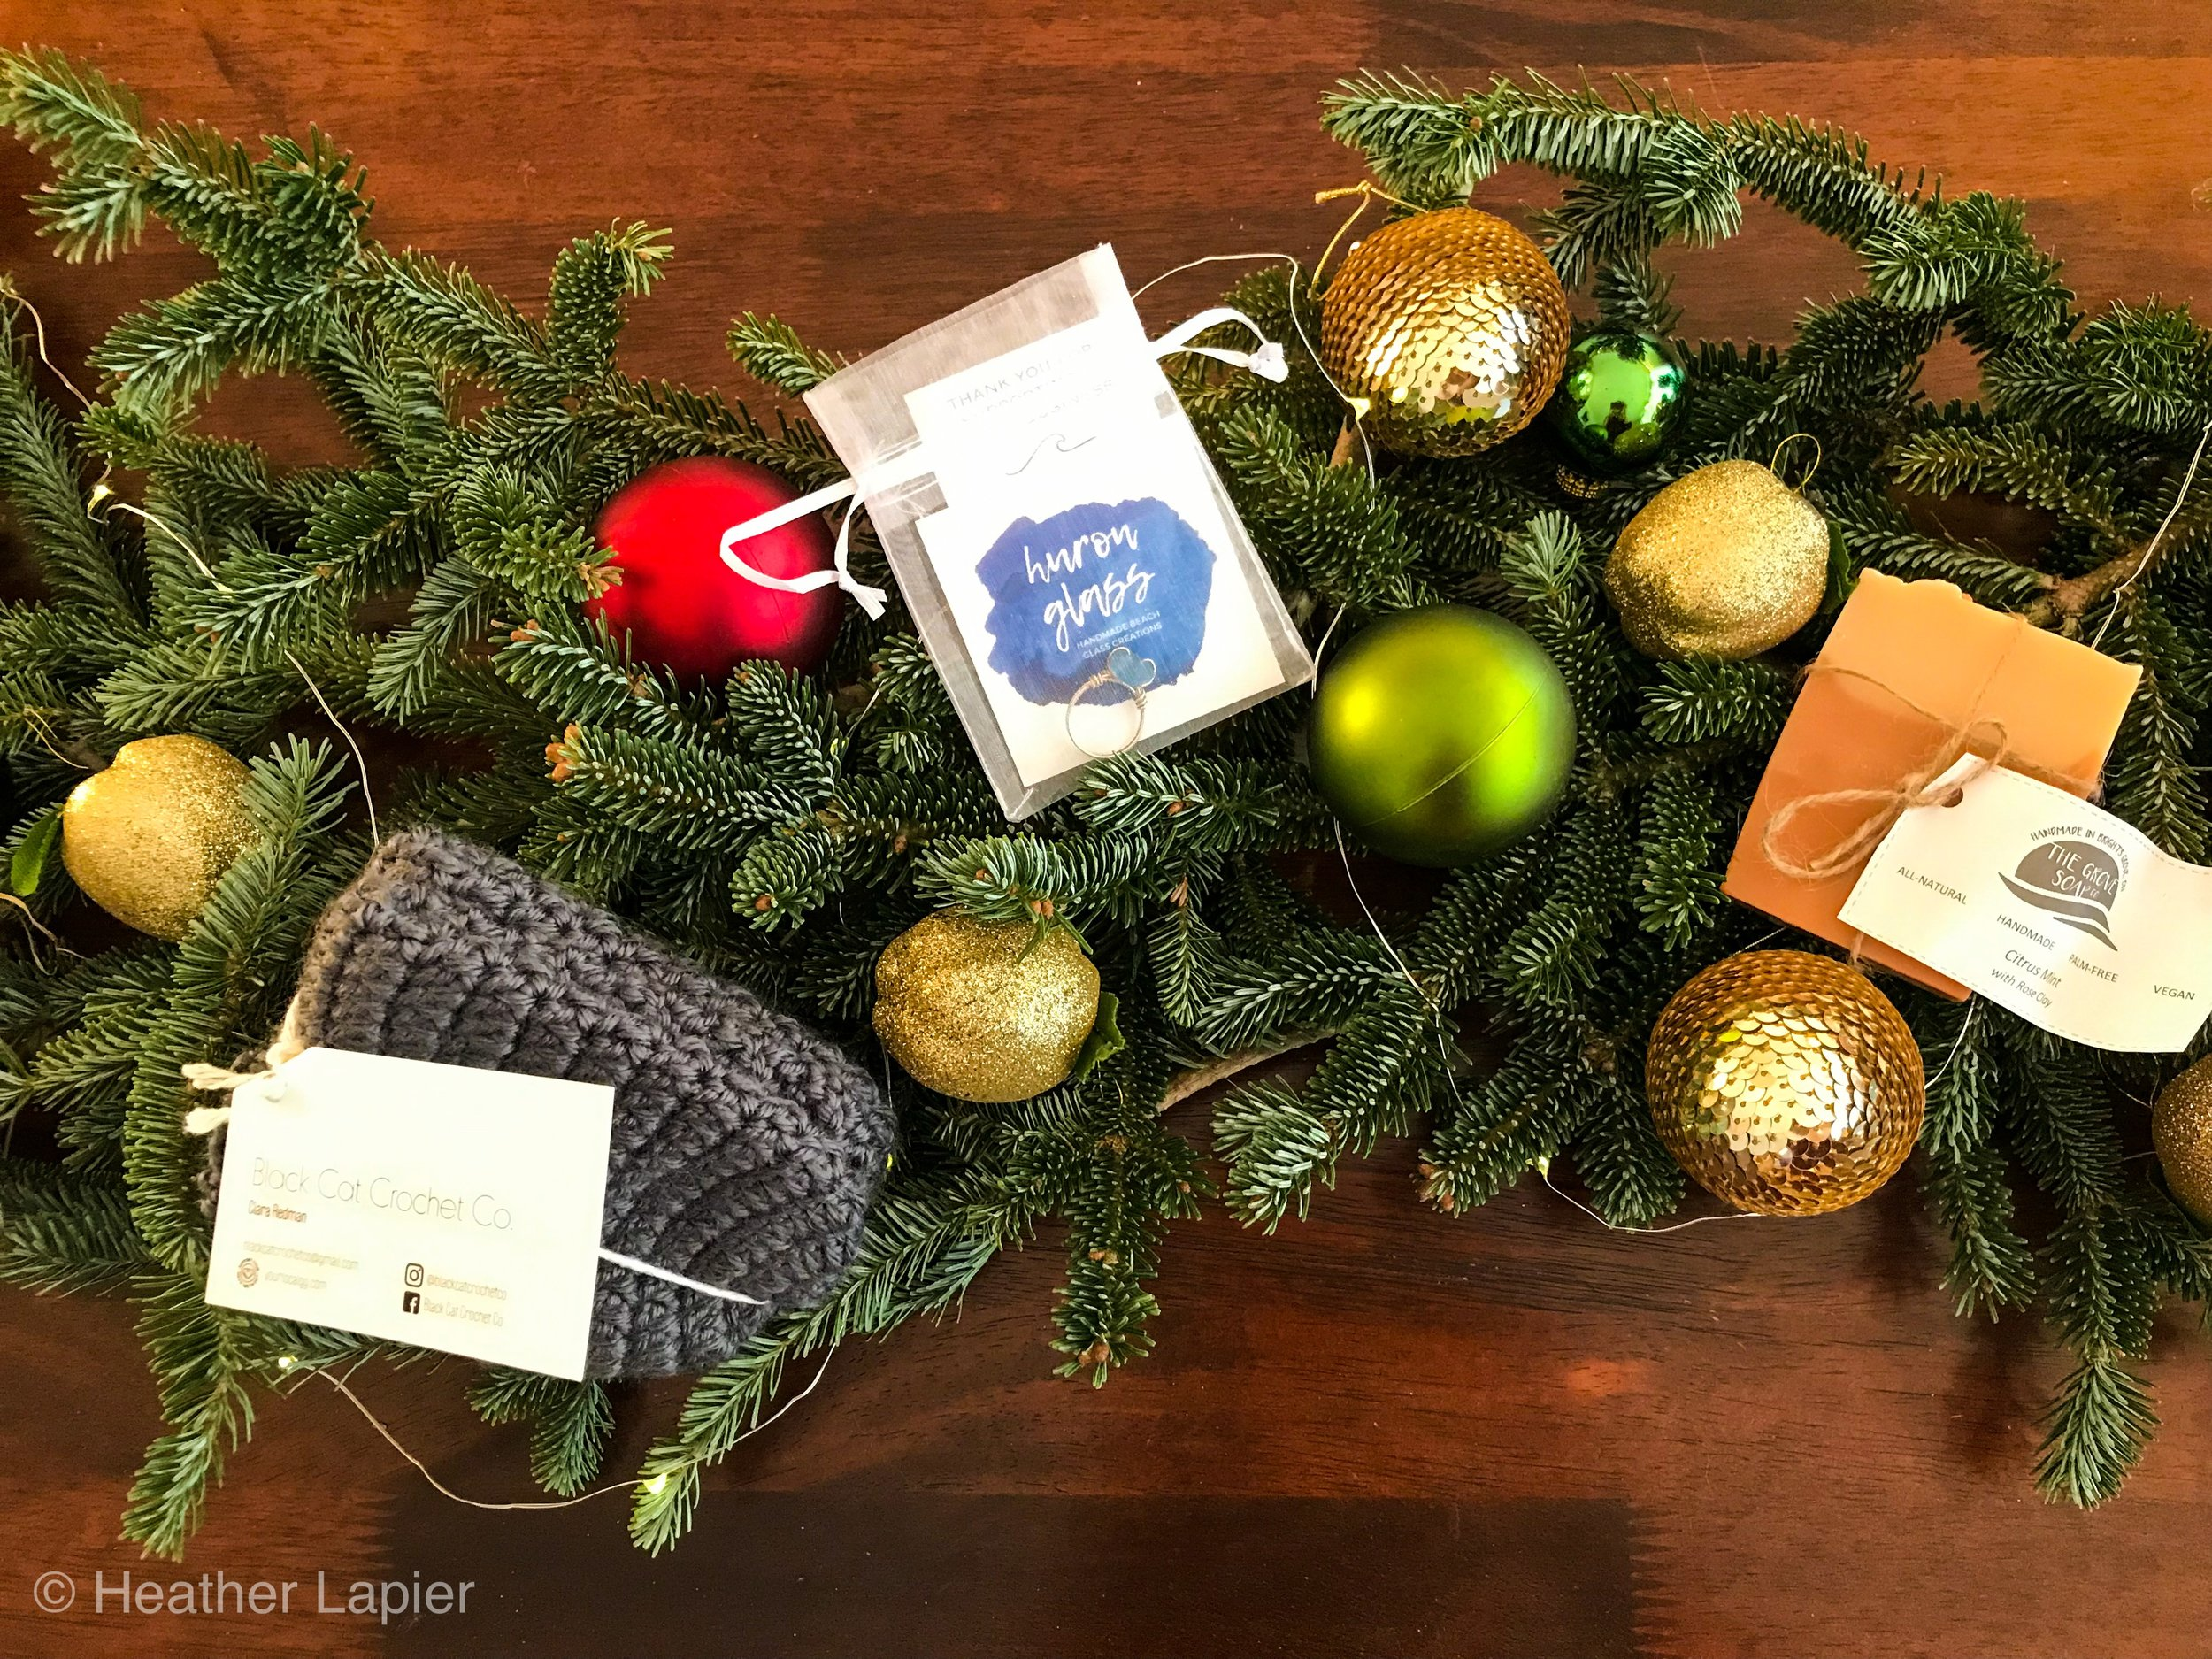 BLACK CAT CROCHET SLIPPERS  $25 grey hand crocheted slippers to keep those toes warm!   THE GROVE SOAP CO. YLGG  Citrus Mint Soap $7.50 exclusive scent handmade vegan all natural soap.  Win this trio of gifts above by simply subscribing to my email newsletter below, contest closes on Monday Dec 10.